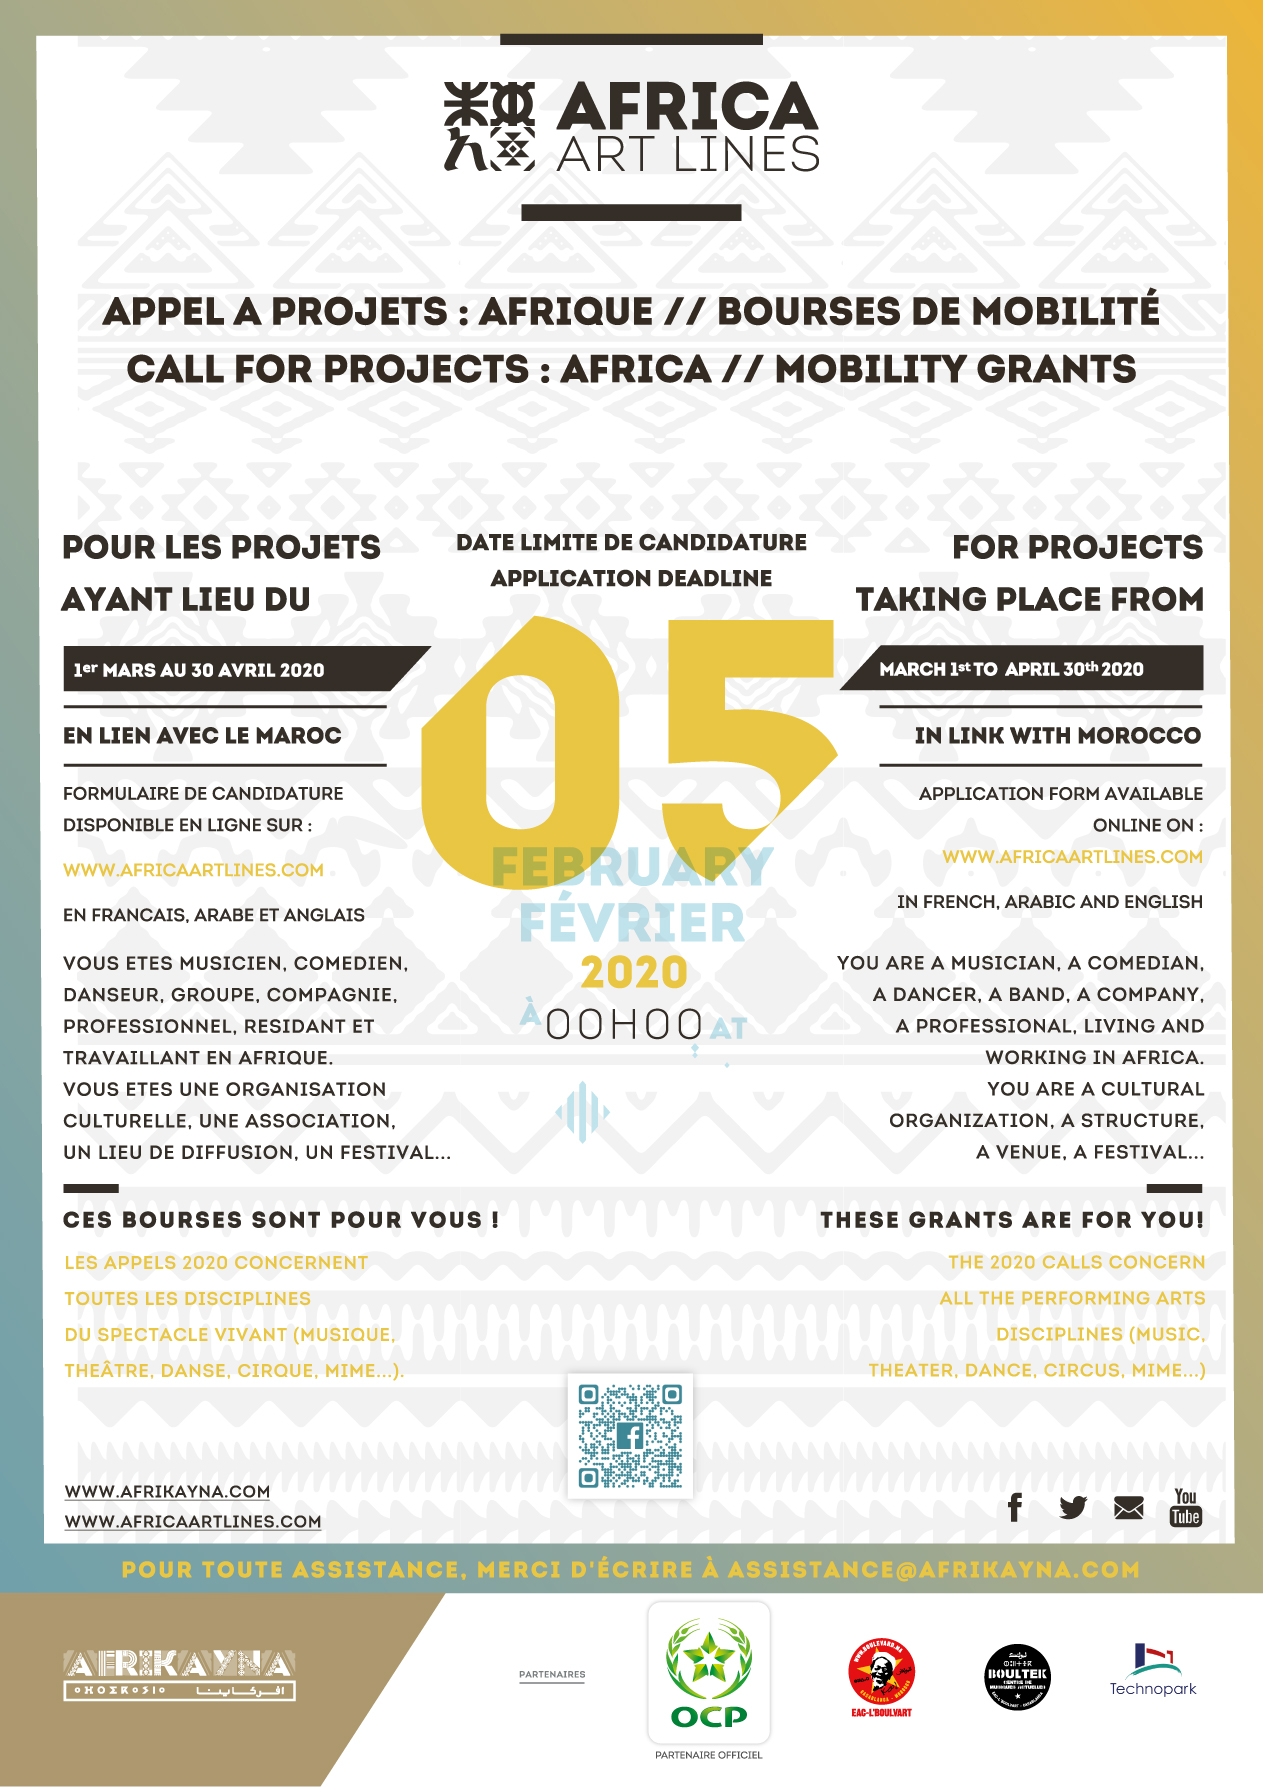 APPEL A PROJETS AFRICA ART LINES N°1 – 2020